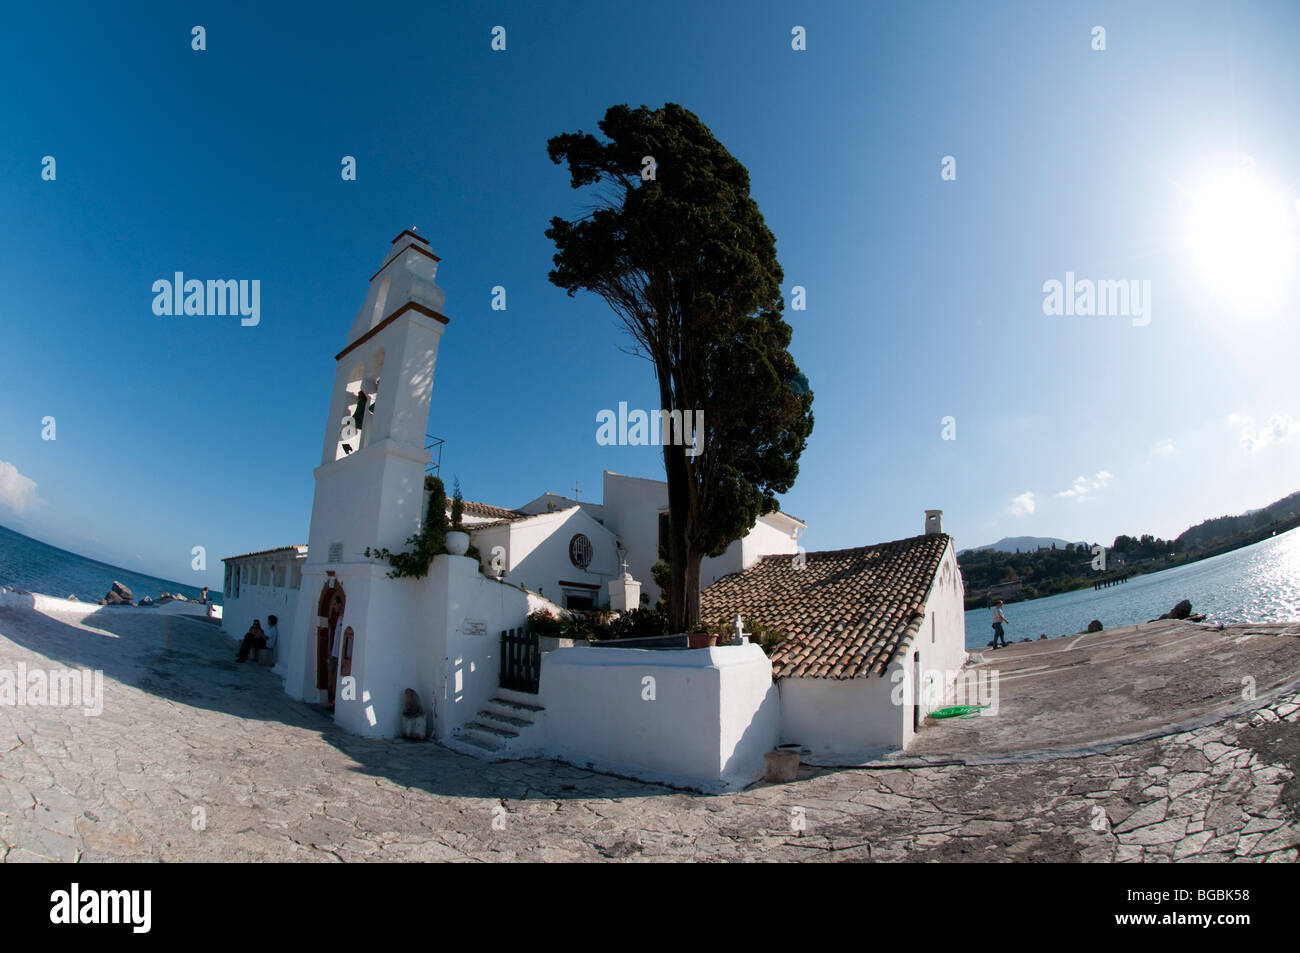 Vlacherna Monastry of Panayia, Cofru, Greece - Stock Image